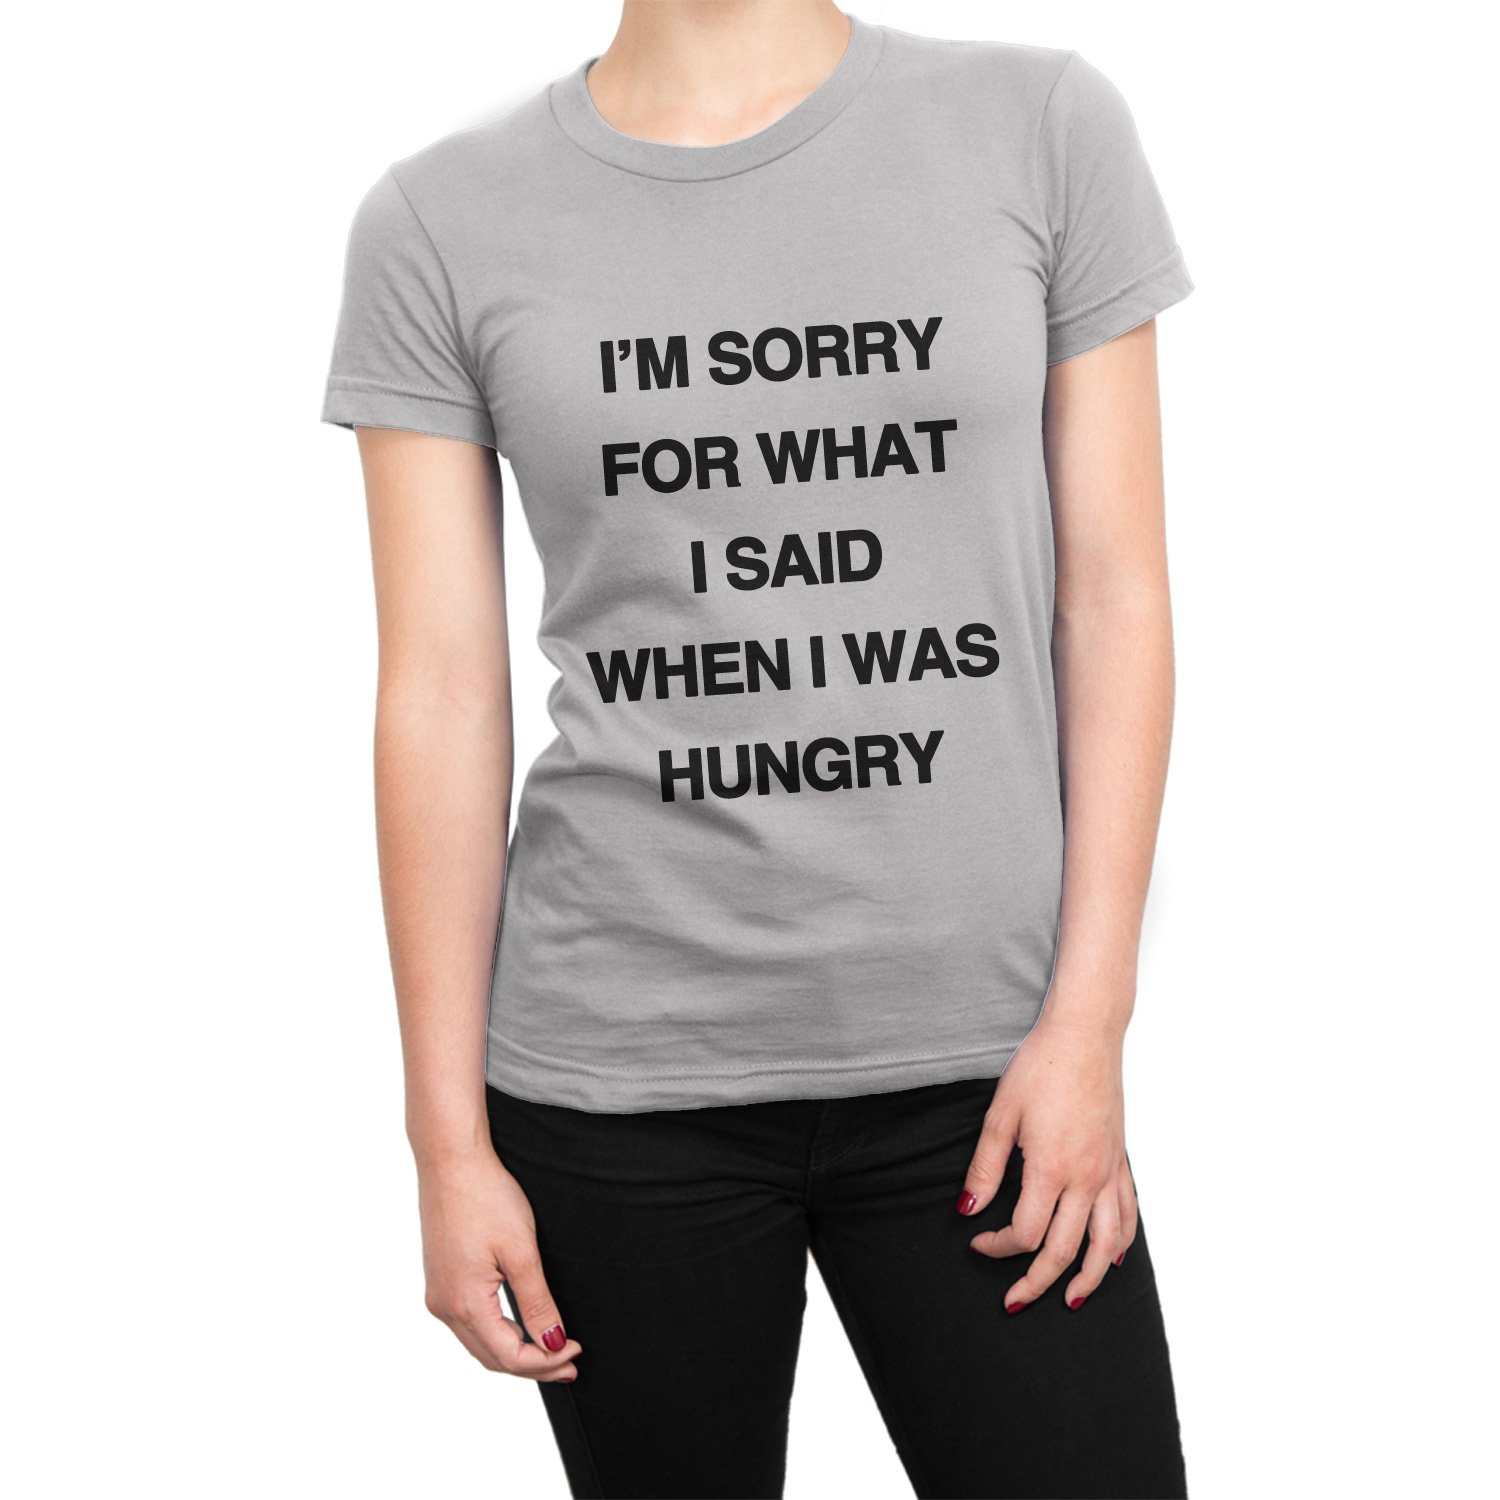 9d6f83174 I'm Sorry For What I Said When I Was Hungry women's t-shirt • Clique ...